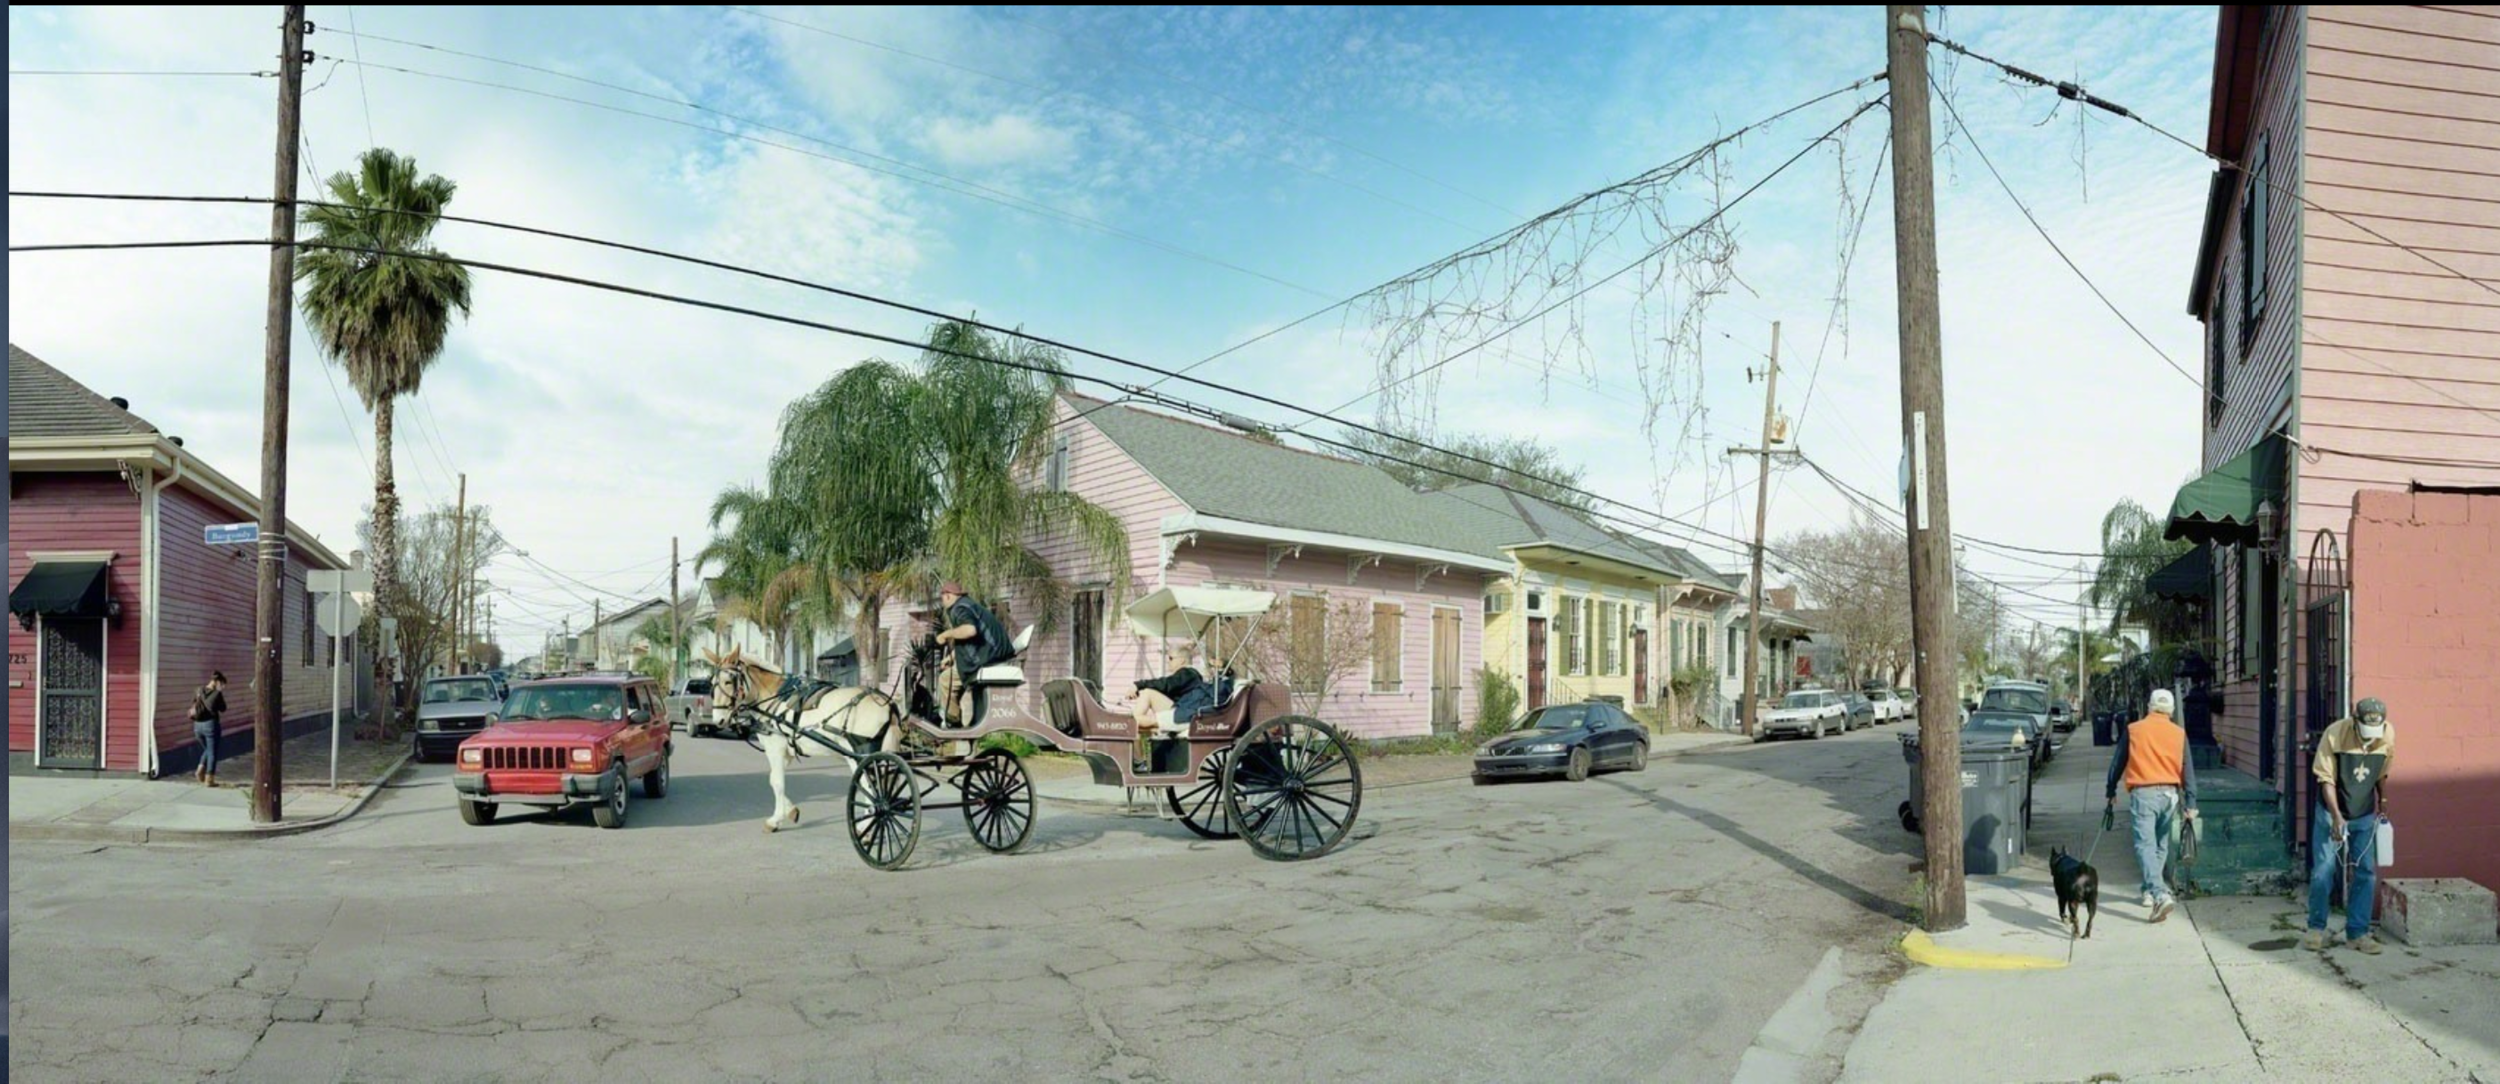 Burgundy Street, The Marigny, New Orleans , 2014, Impression au jet d'encre